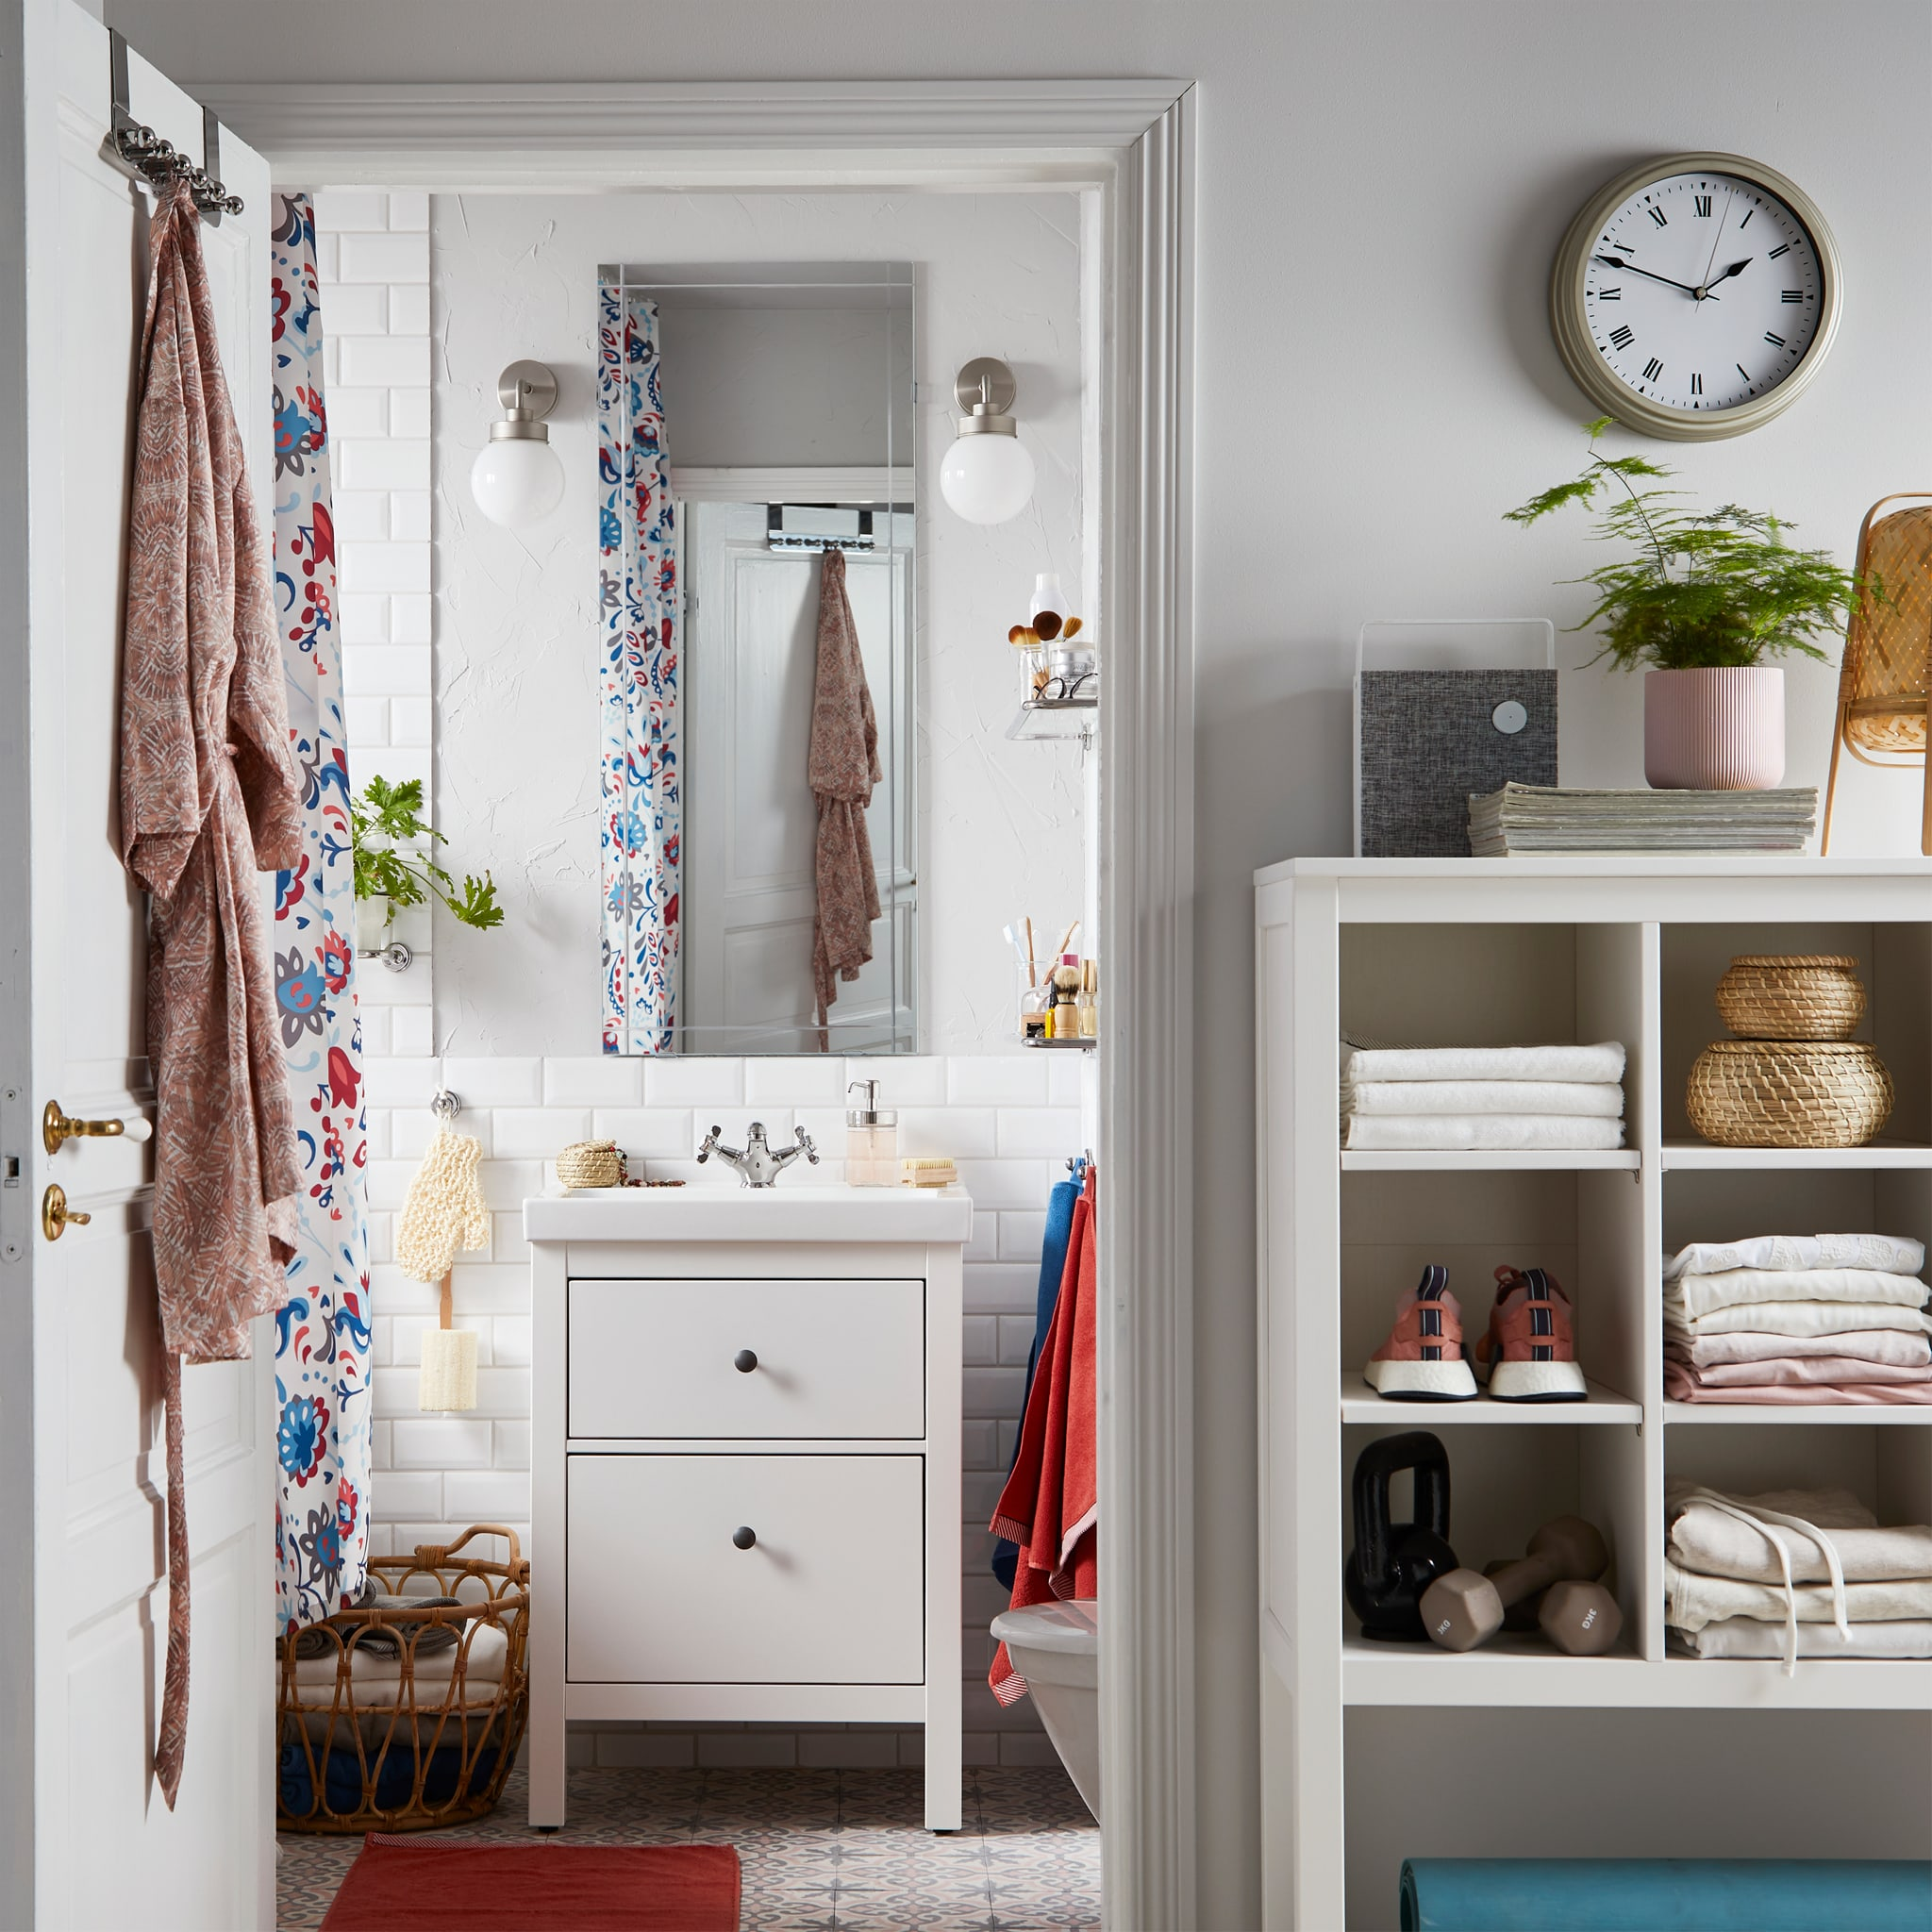 An open bathroom door with a hanger with a bathrobe, and inside is a white wash stand, a mirror and wall lamps on each side.